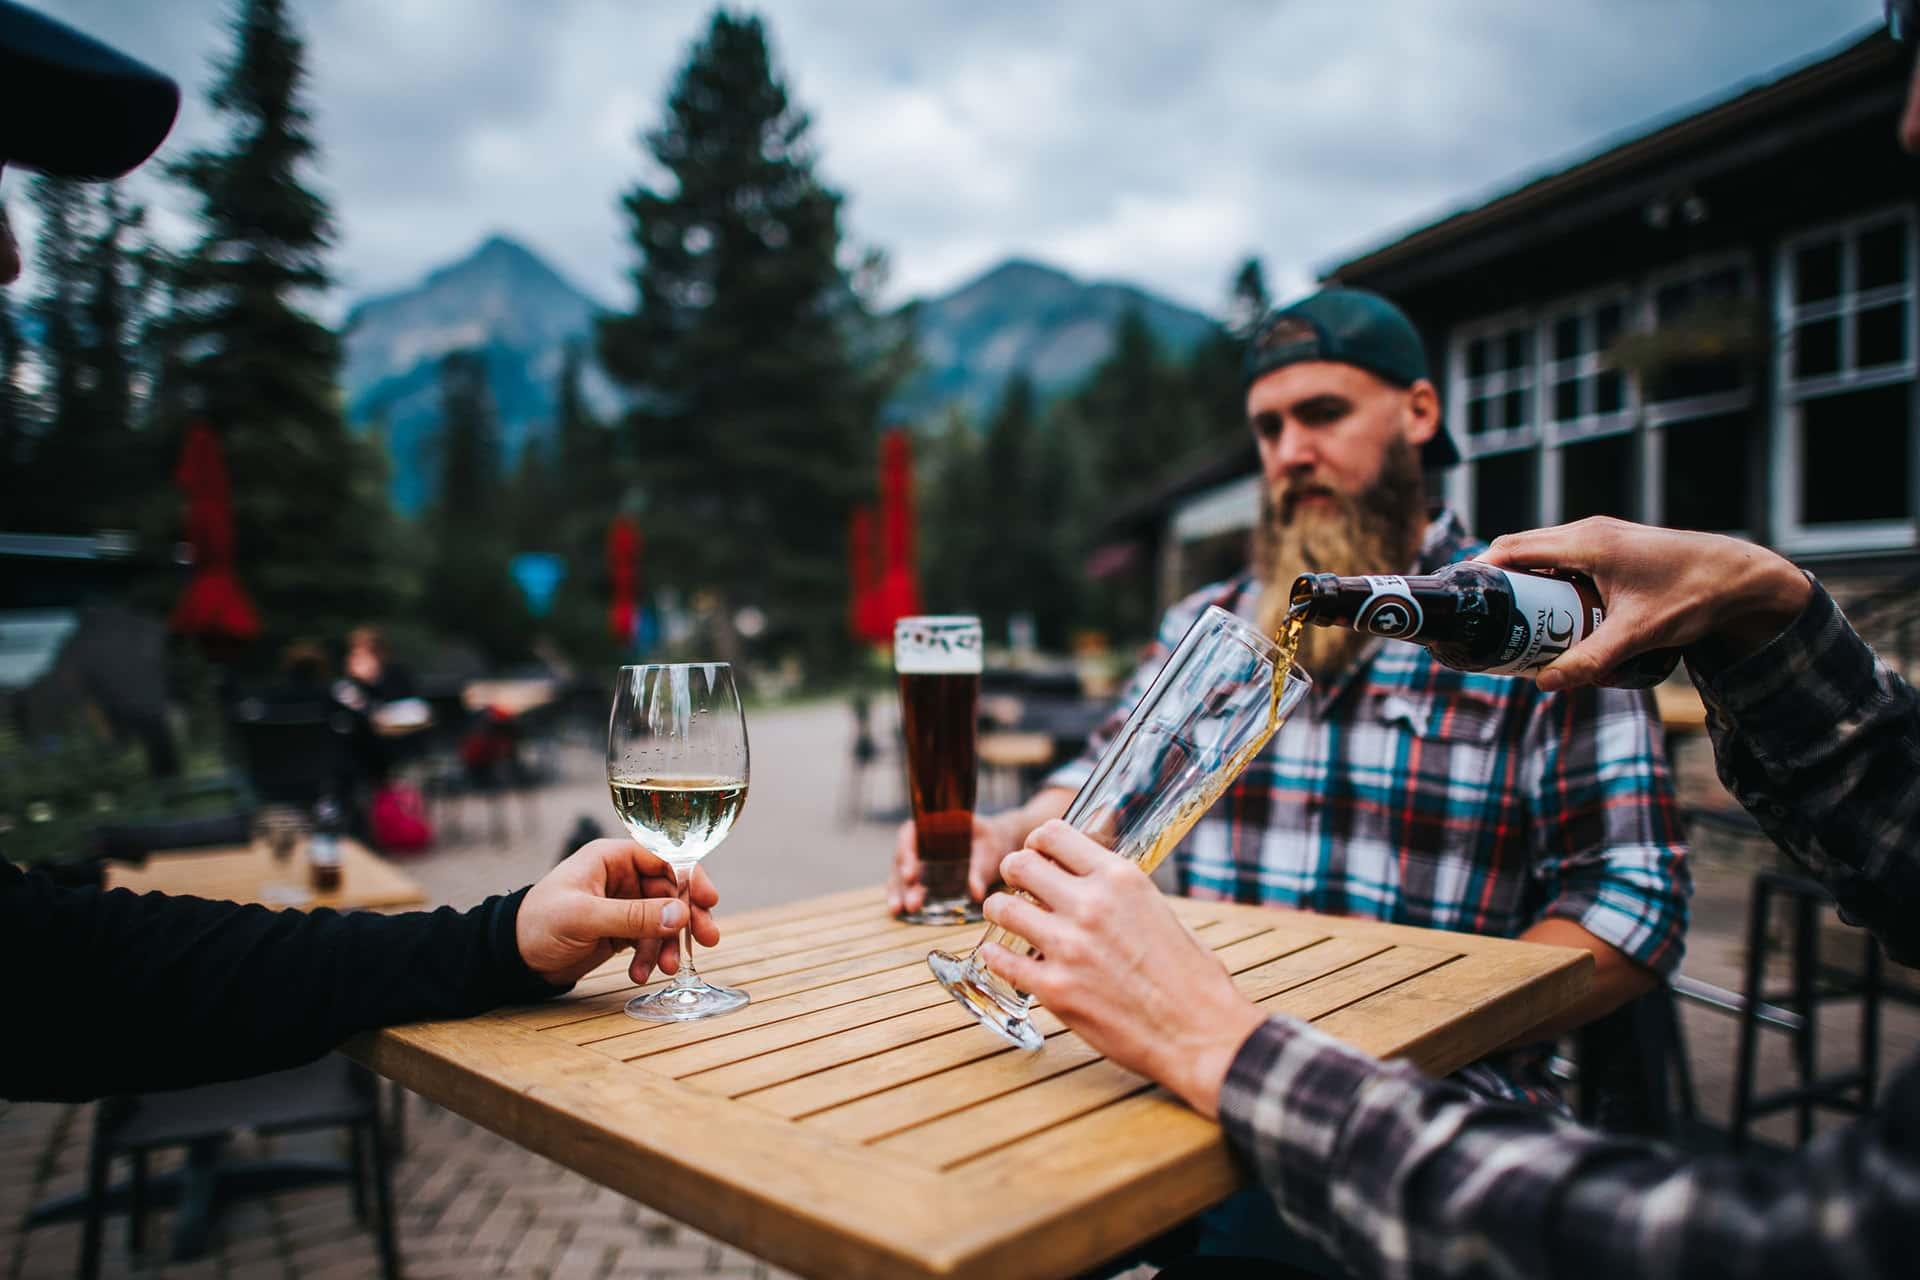 Patio Beers with Friends at Deer Lodge in Lake Louise